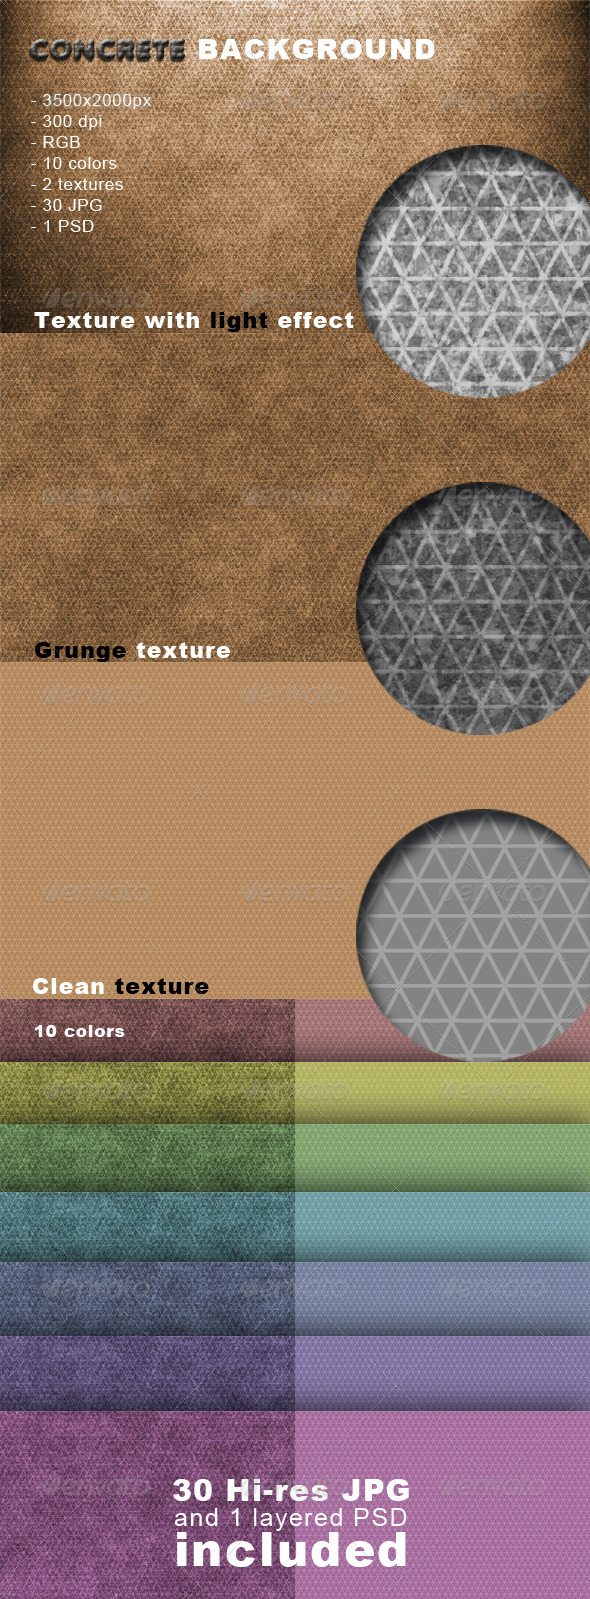 Concrete Background - Patterns Backgrounds